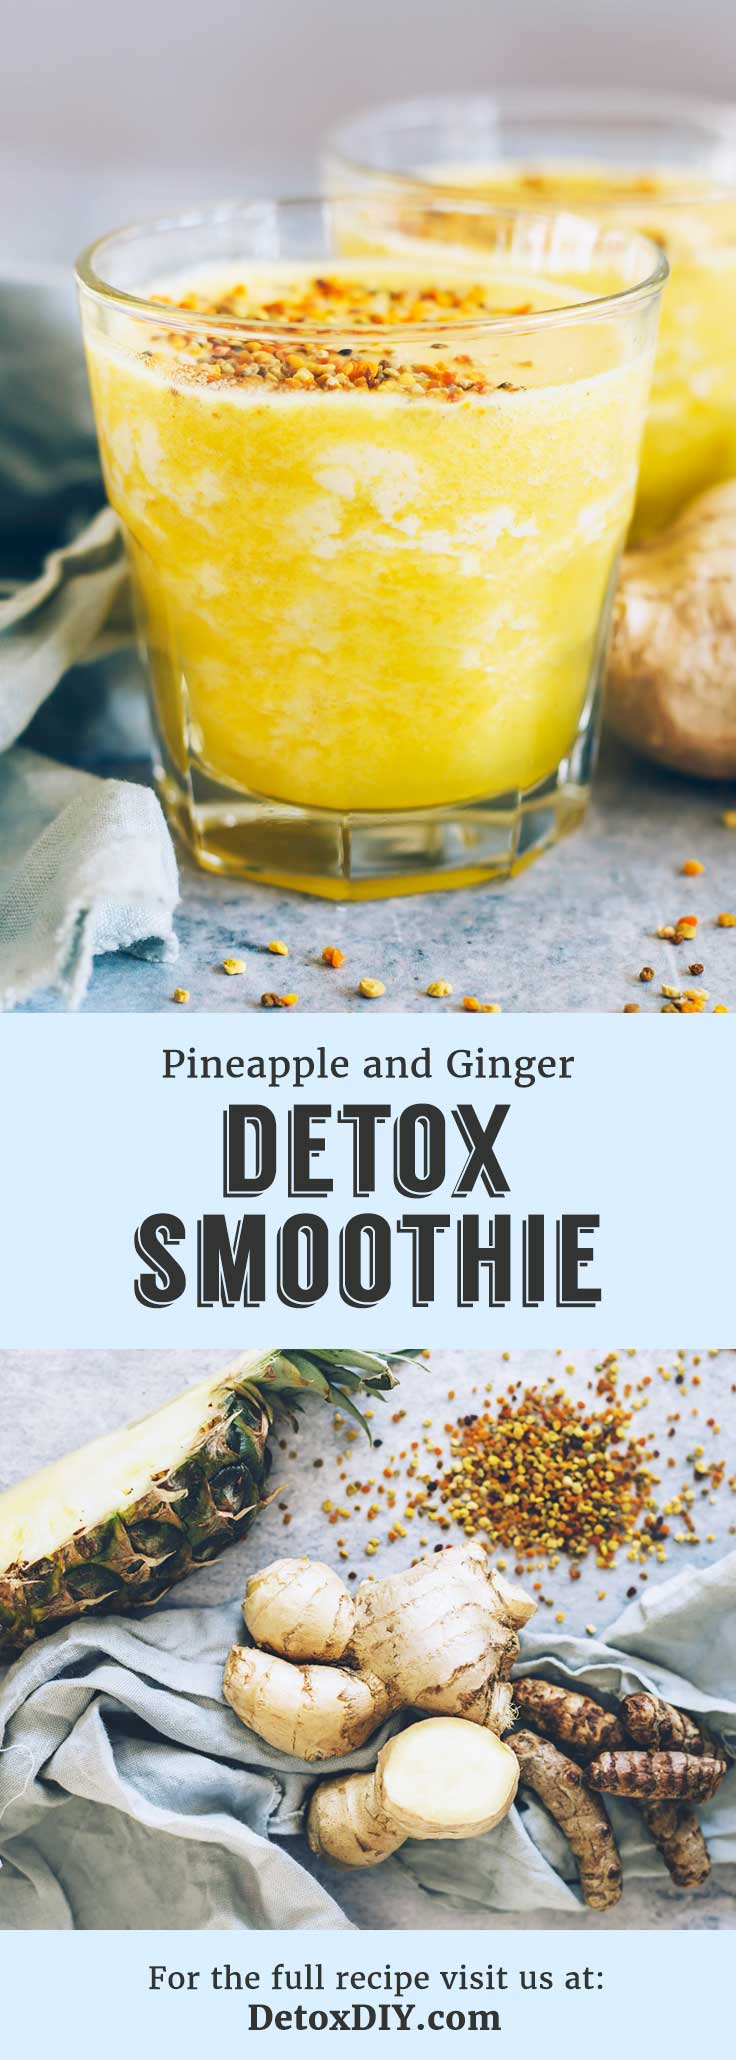 Try this tasty smoothie recipe! It is my favorite turmeric and ginger detox smoothie to help clear and smooth my skin.